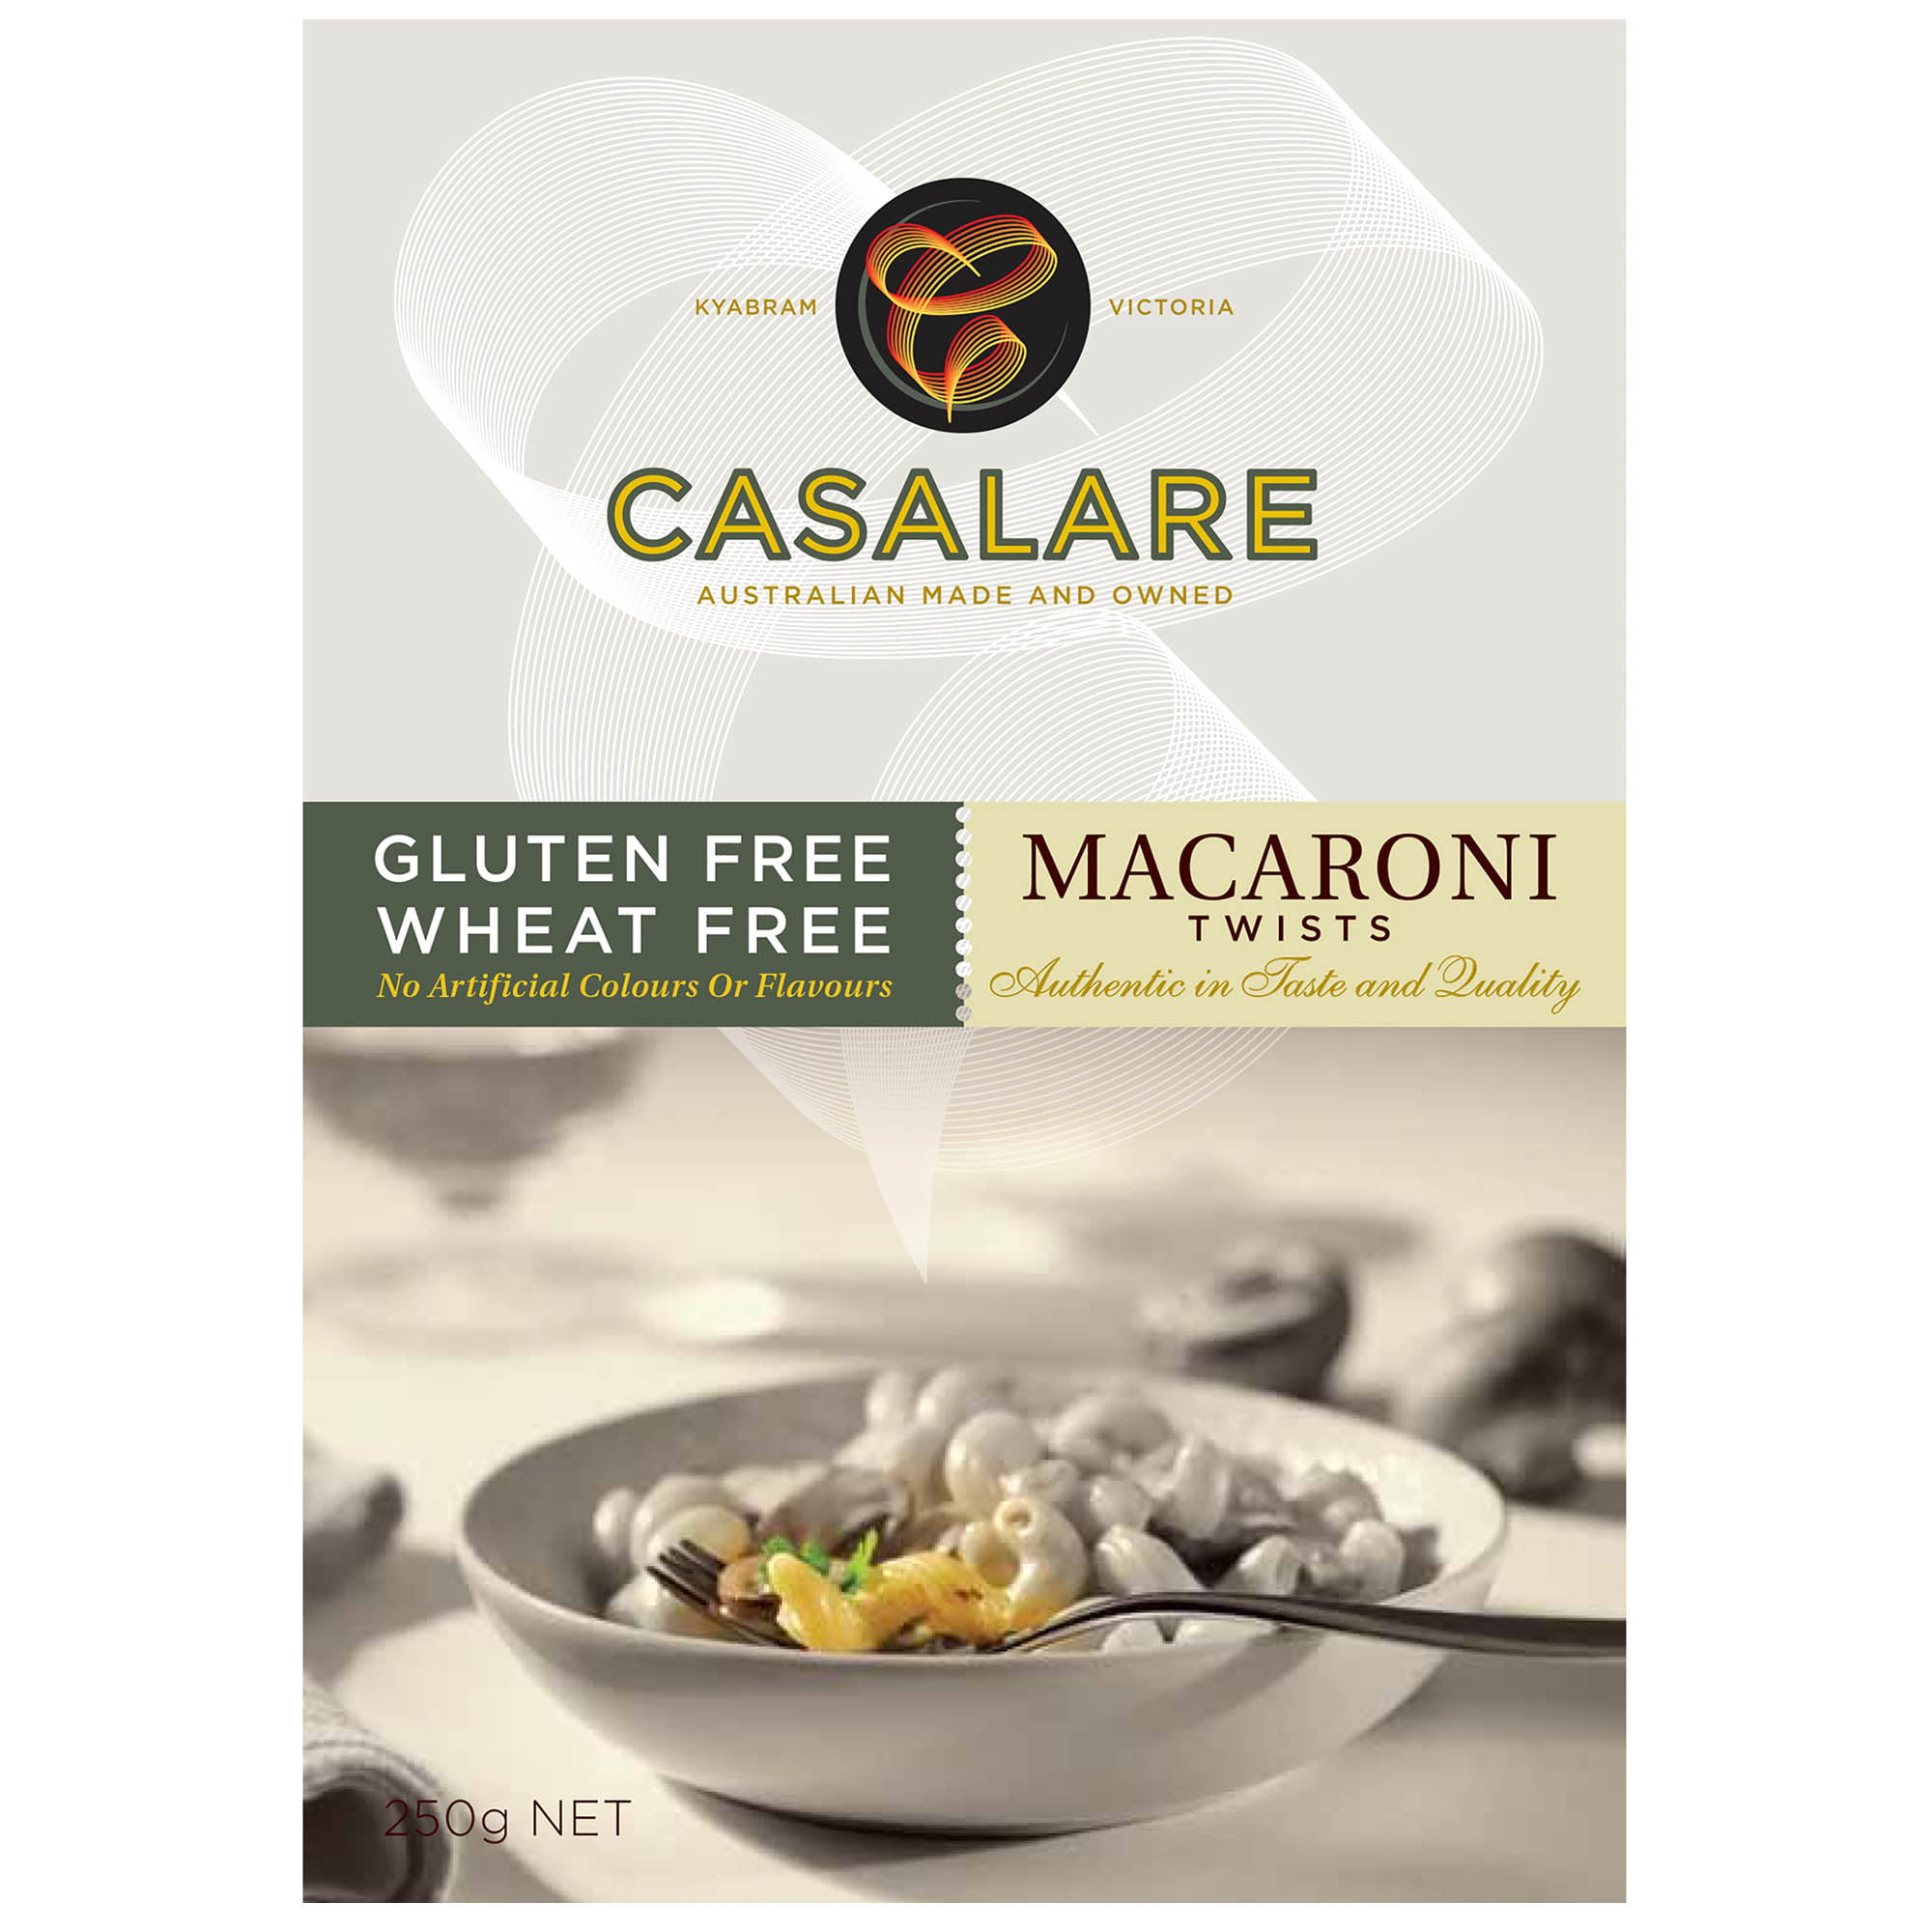 casalare macaroni twists box FA copy